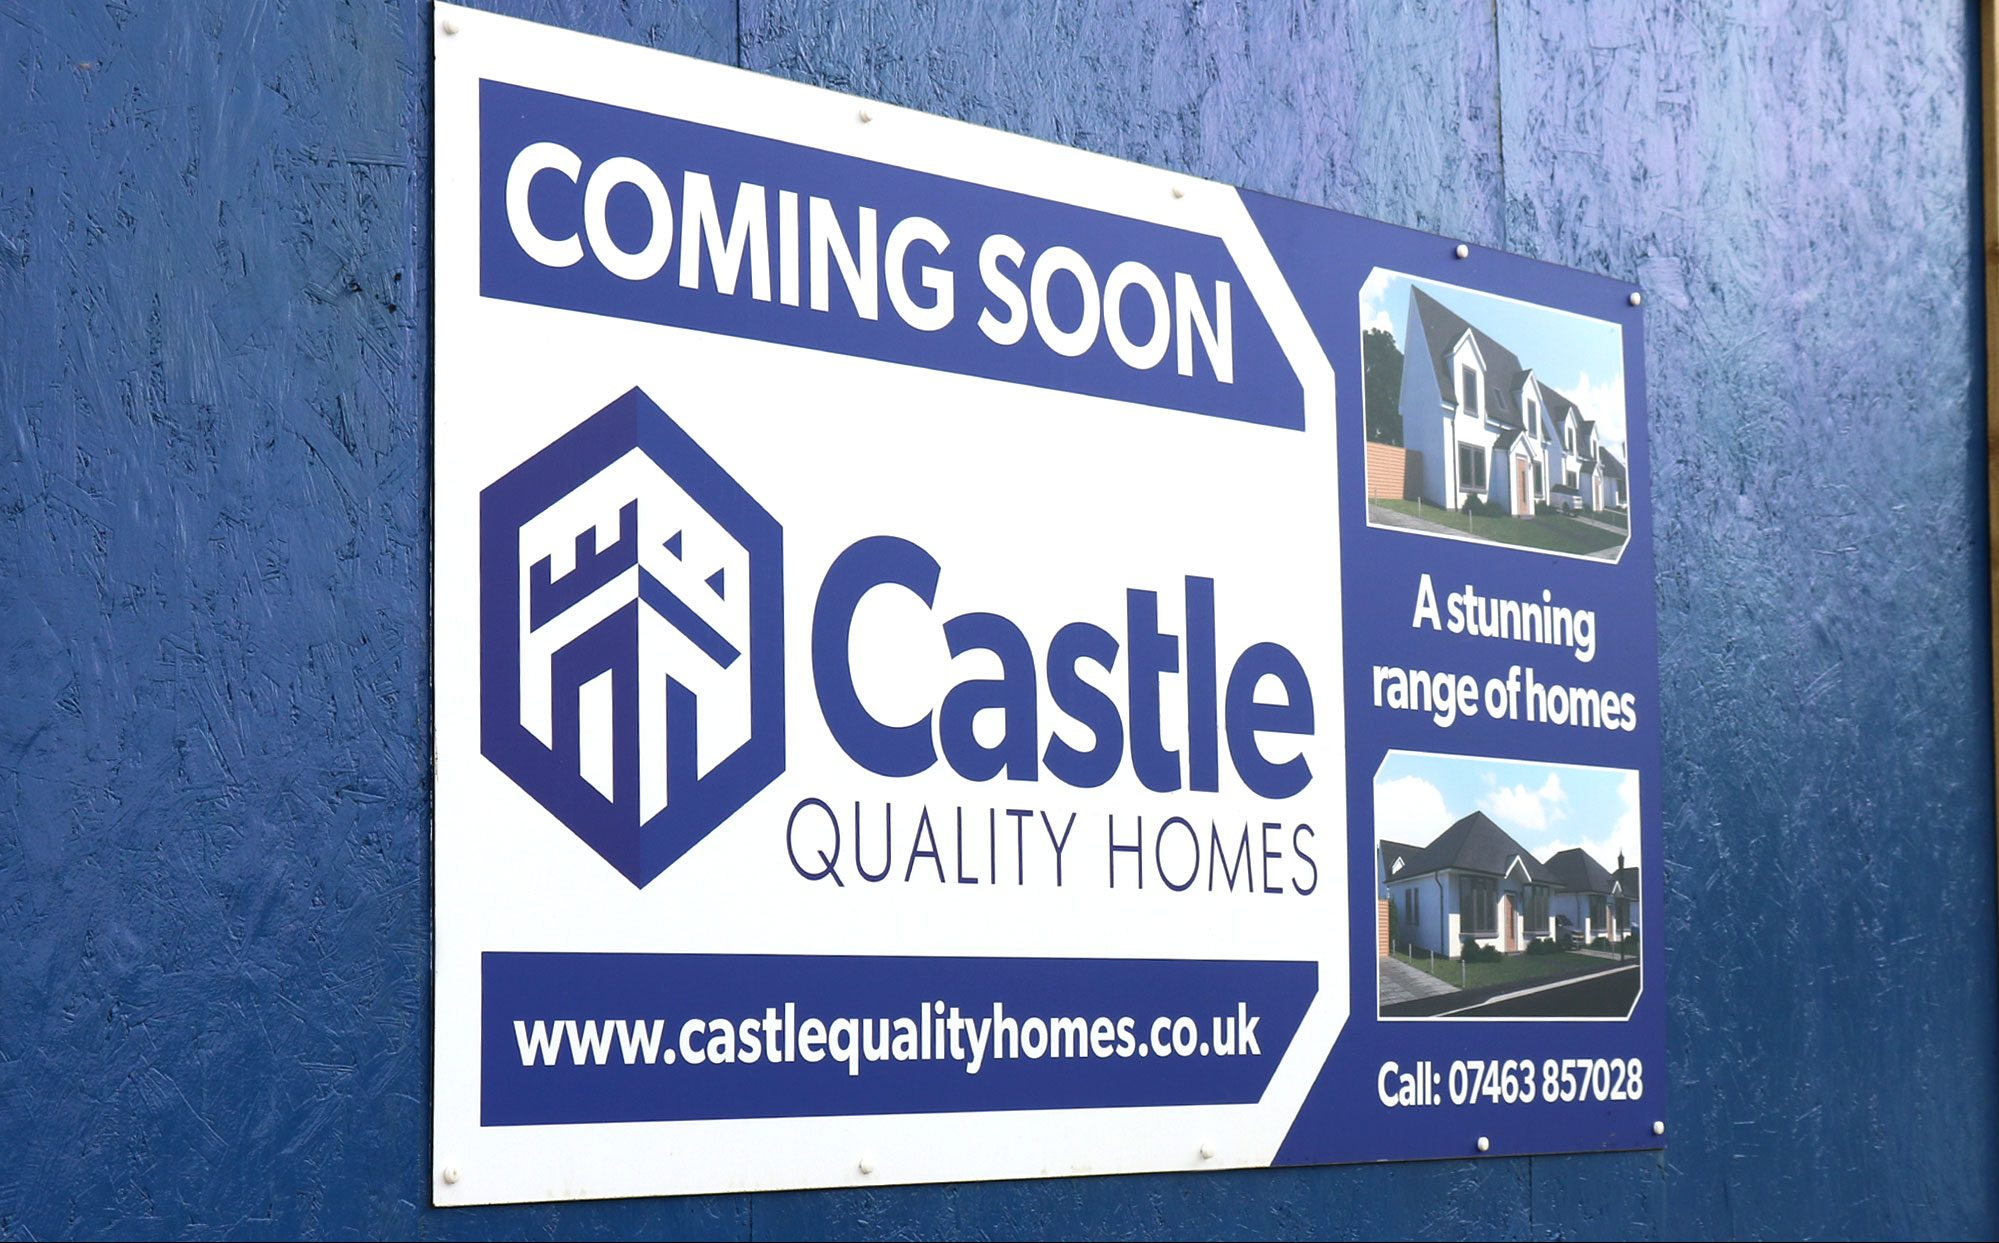 Castle Quality Homes